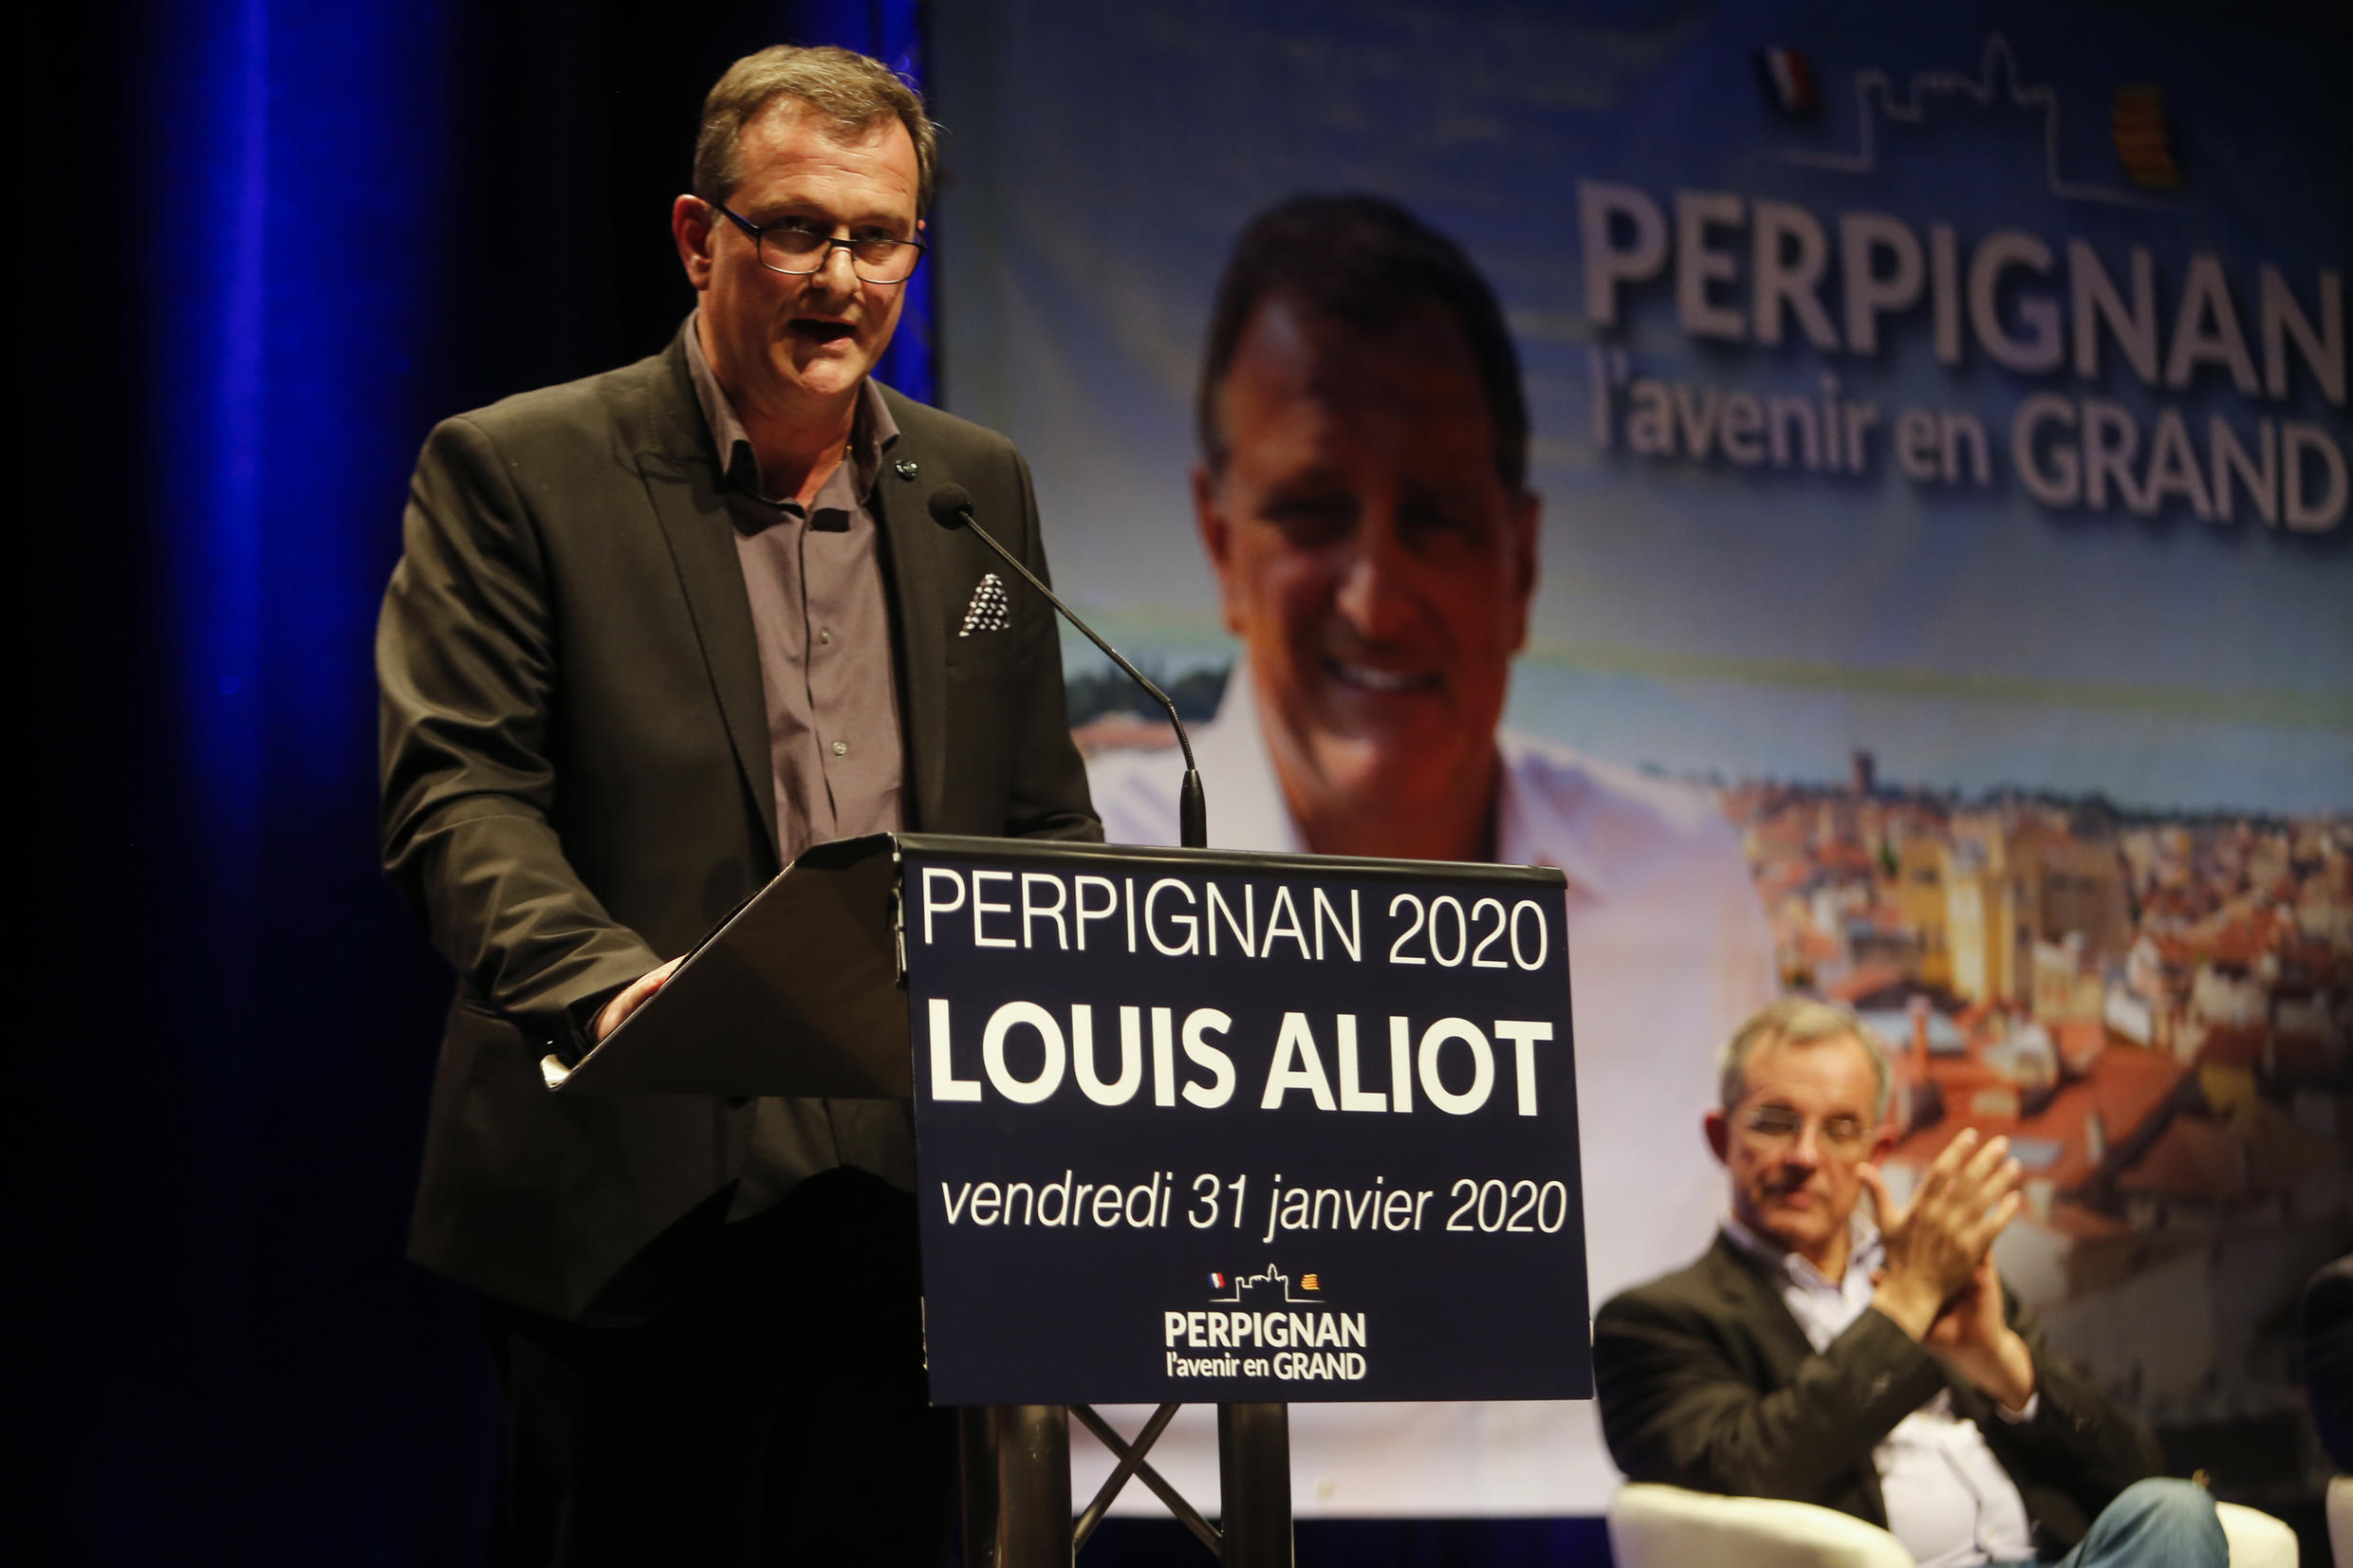 L In this file photo taken on January 31, 2020 French far-right party Rassemblement National (RN) MP and candidate for the upcoming mayoral elections Louis Aliot speaks on stage during a meeting in Perpignan on January 31, 2020.